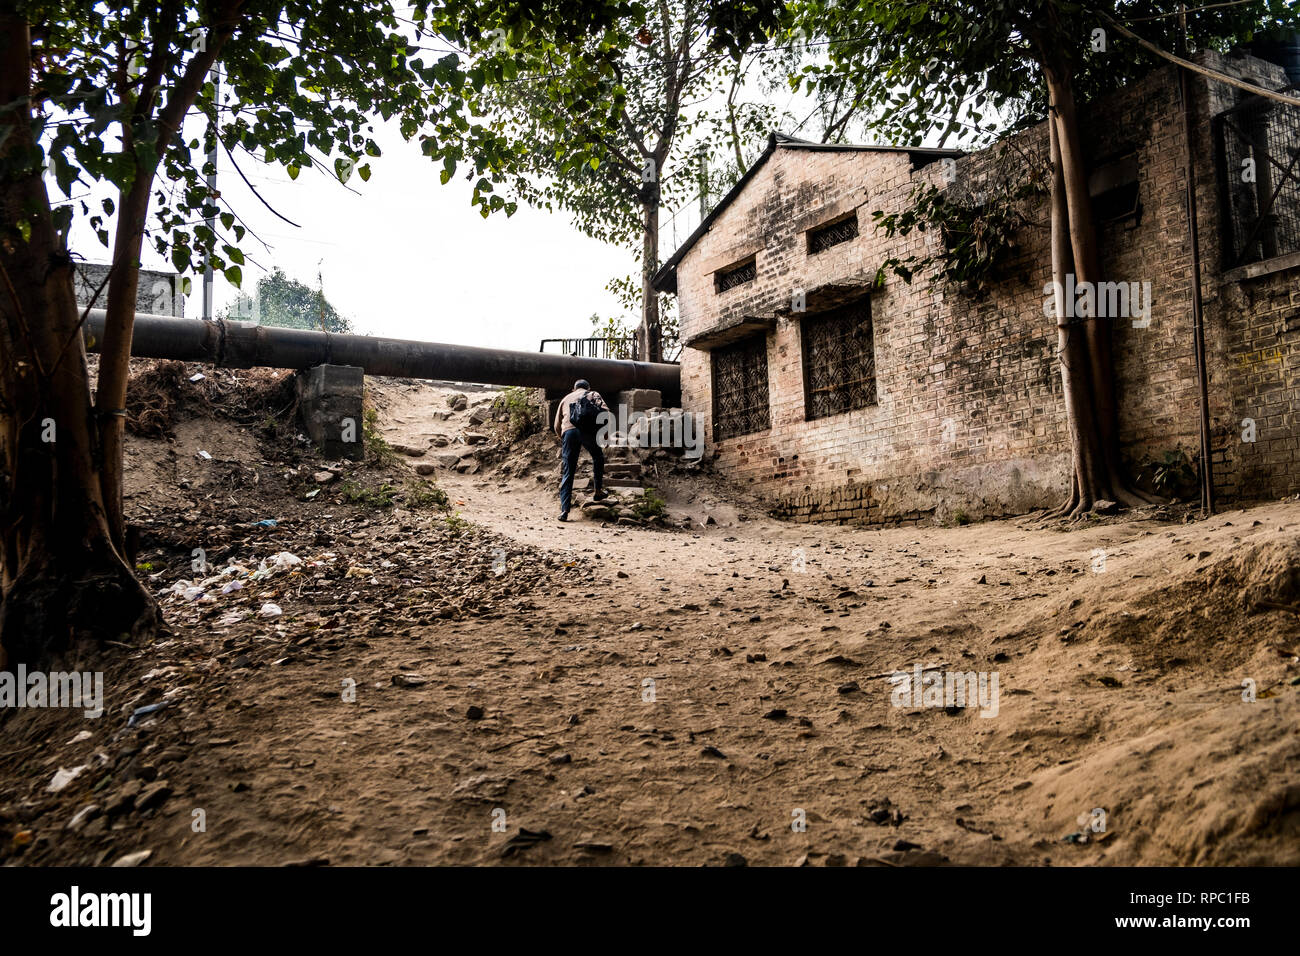 A man about to cross the railway tracks that lies beyond this building close to Pragati Maidan. - Stock Image